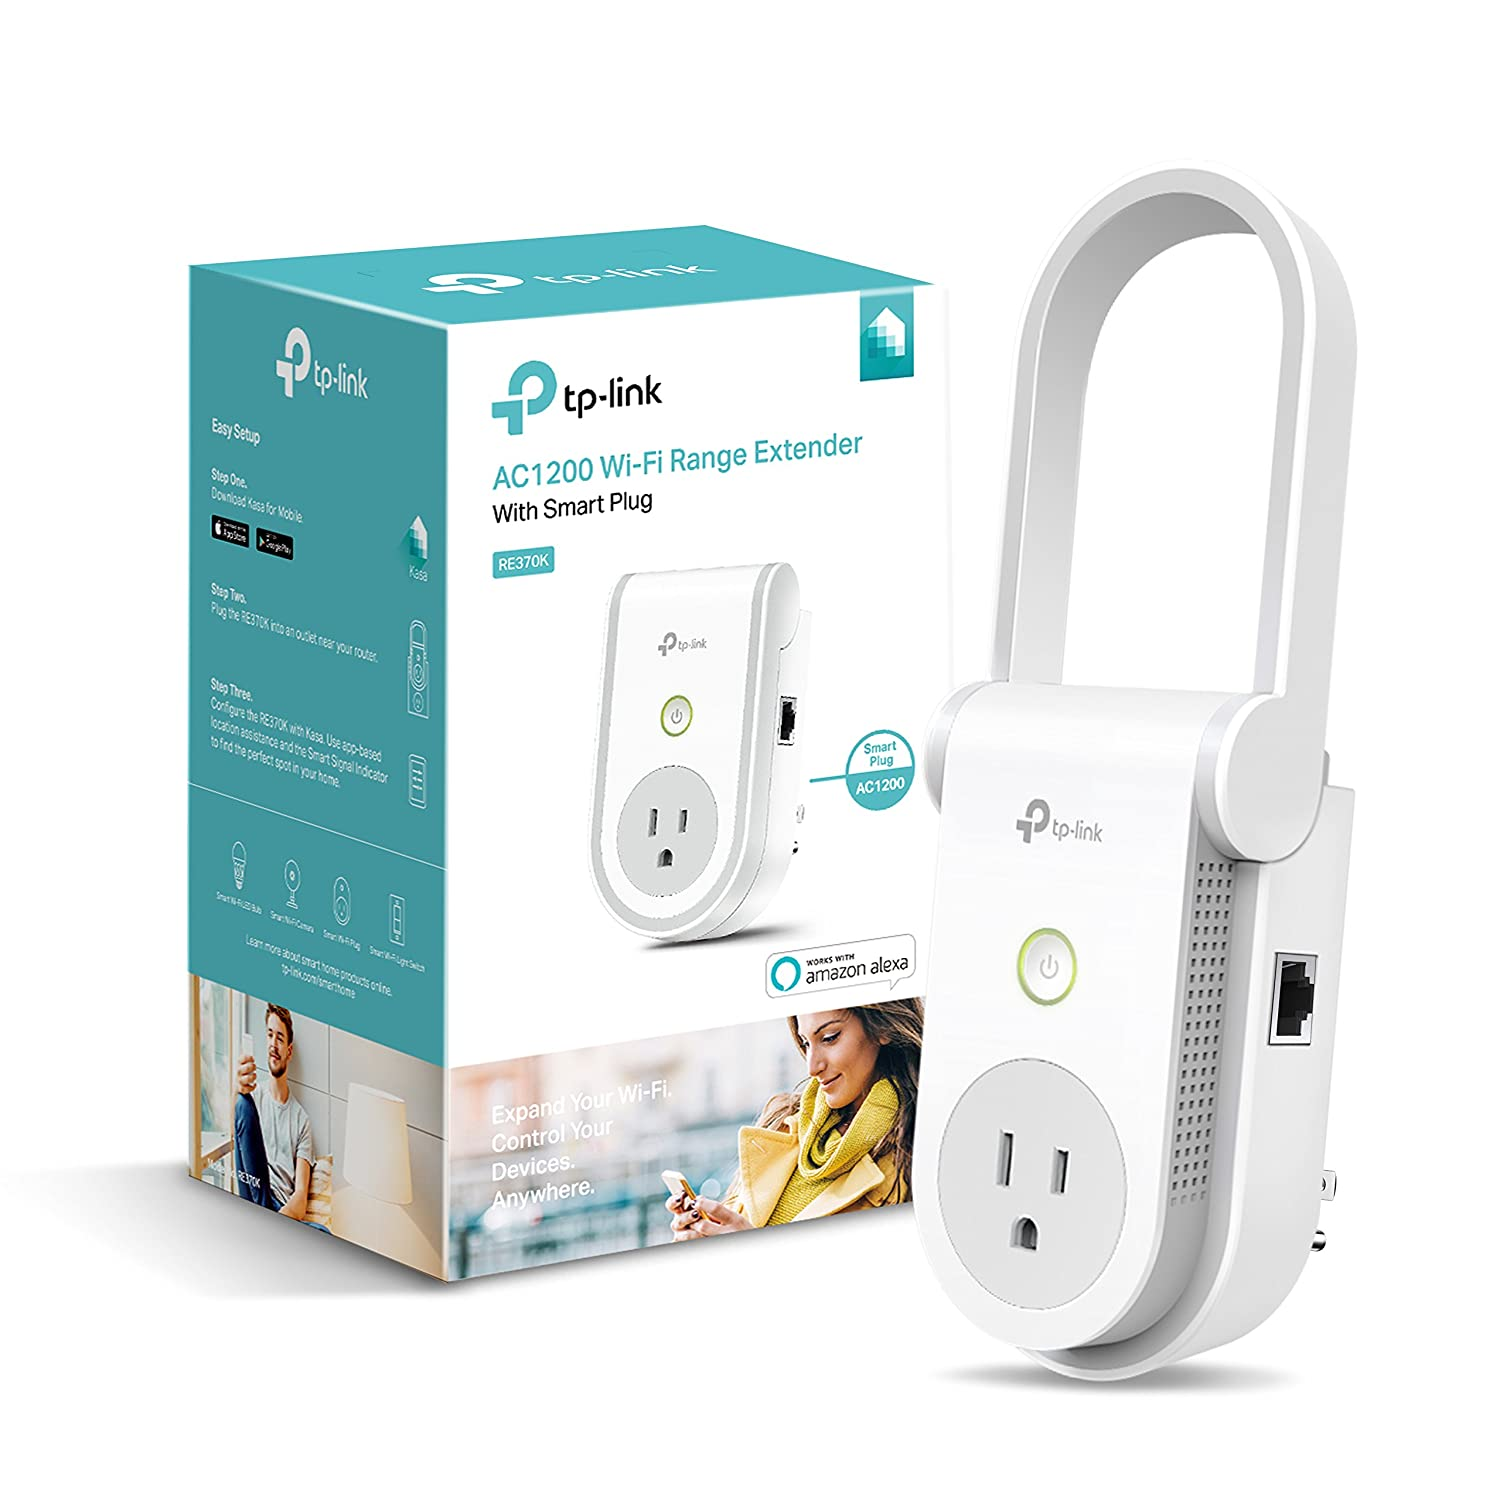 Kasa AC1200 Wi-Fi Range Extender Smart Plug by TP-Link - Fast AC1200 Wi-Fi Extender/Repeater with Built-In Smart Plug, No Hub Required, Works With Alexa and Google Assistant (RE370K)